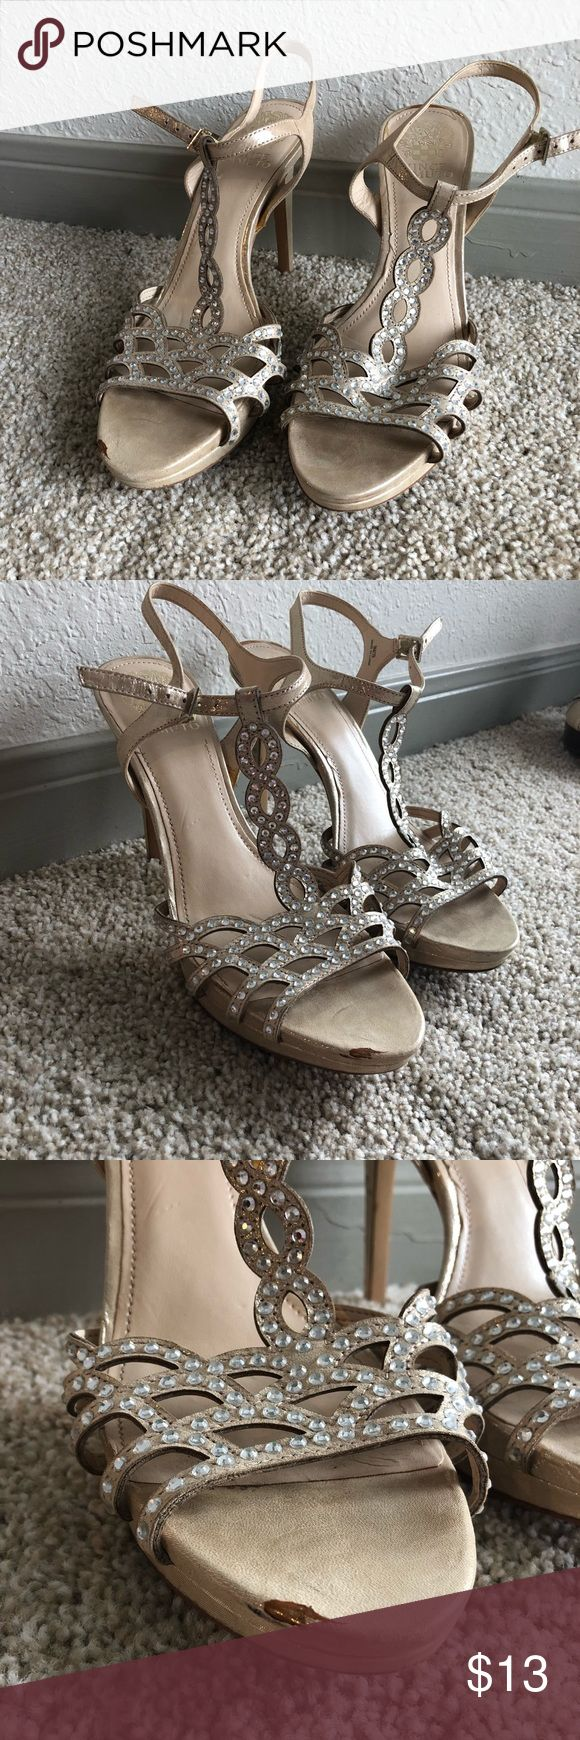 Vince Camuto Heels Champagne colored, worn for one prom and one banquet, they do have SOME wear that is pictured, but a great buy if you only want to wear nice prom shoes once or twice. Comfortable and the wear is not very noticeable other than what is pictured. Heavily discounted for this reason Vince Camuto Shoes Heels